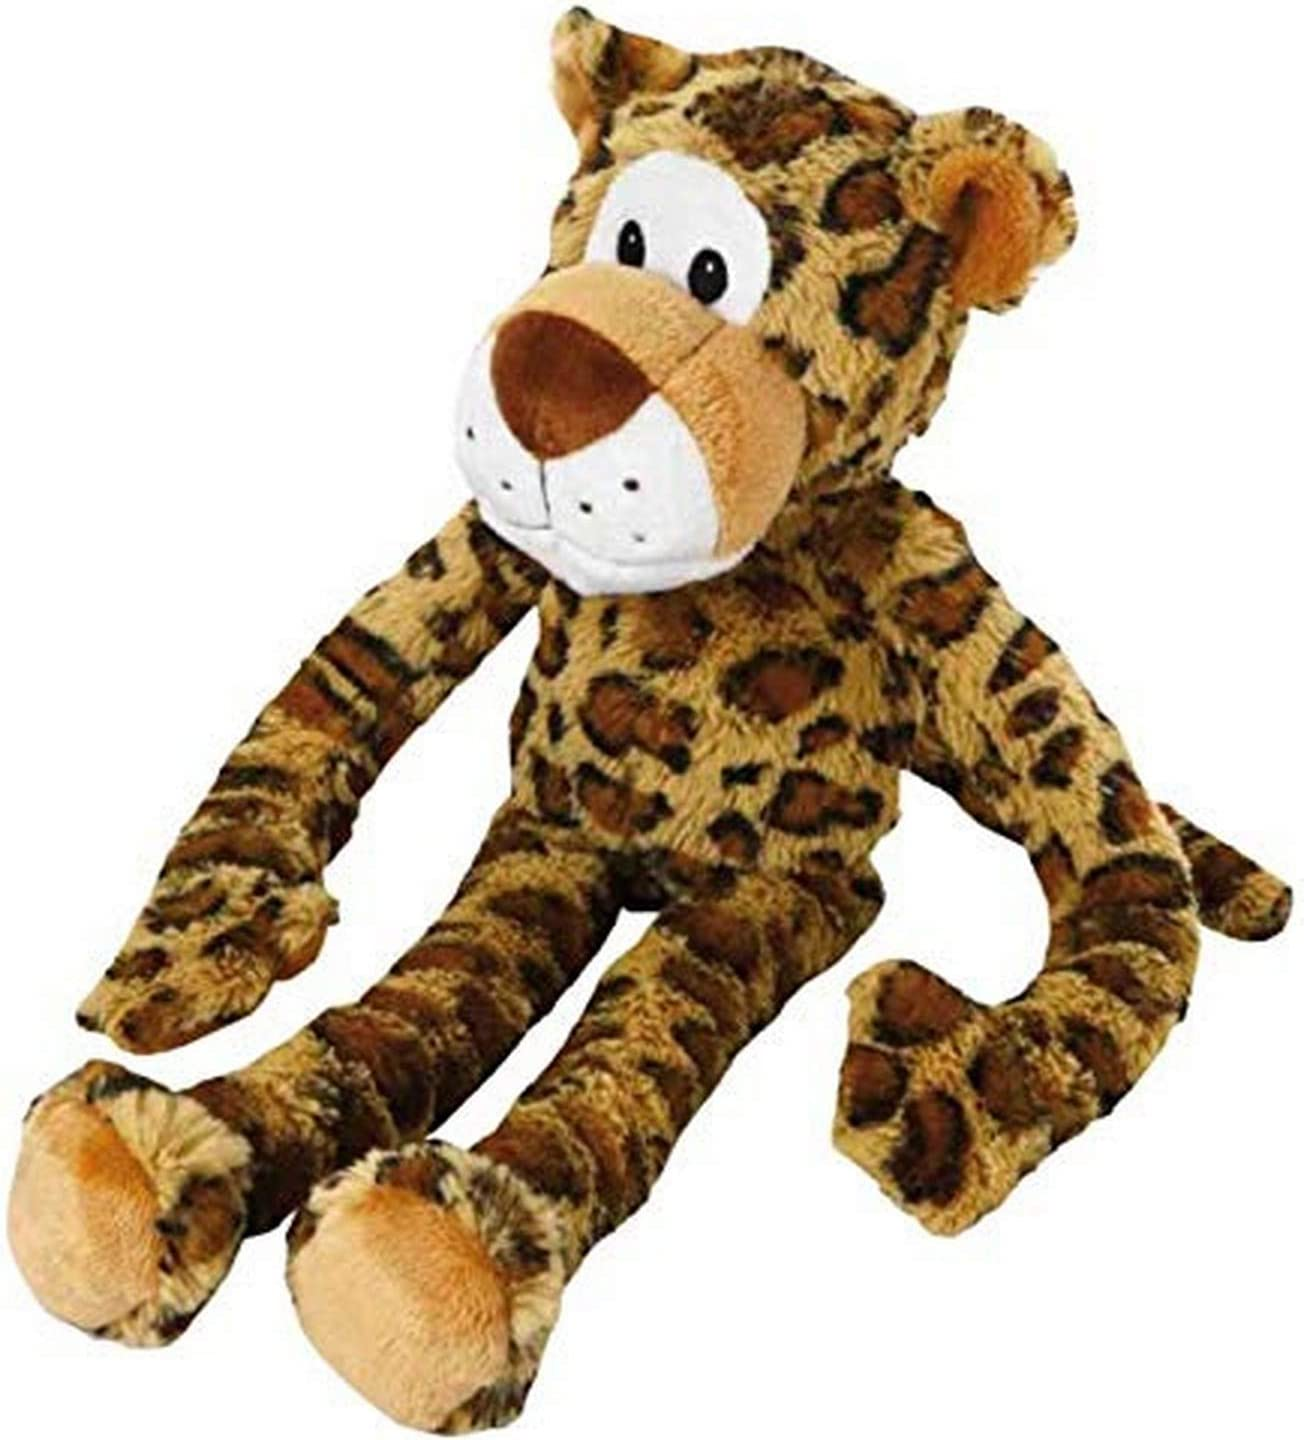 Pet Supplies : Pet Squeak Toys : Multipet Swingin 19-Inch Large Plush Dog Toy with Extra Long Arms and Legs with Squeakers :